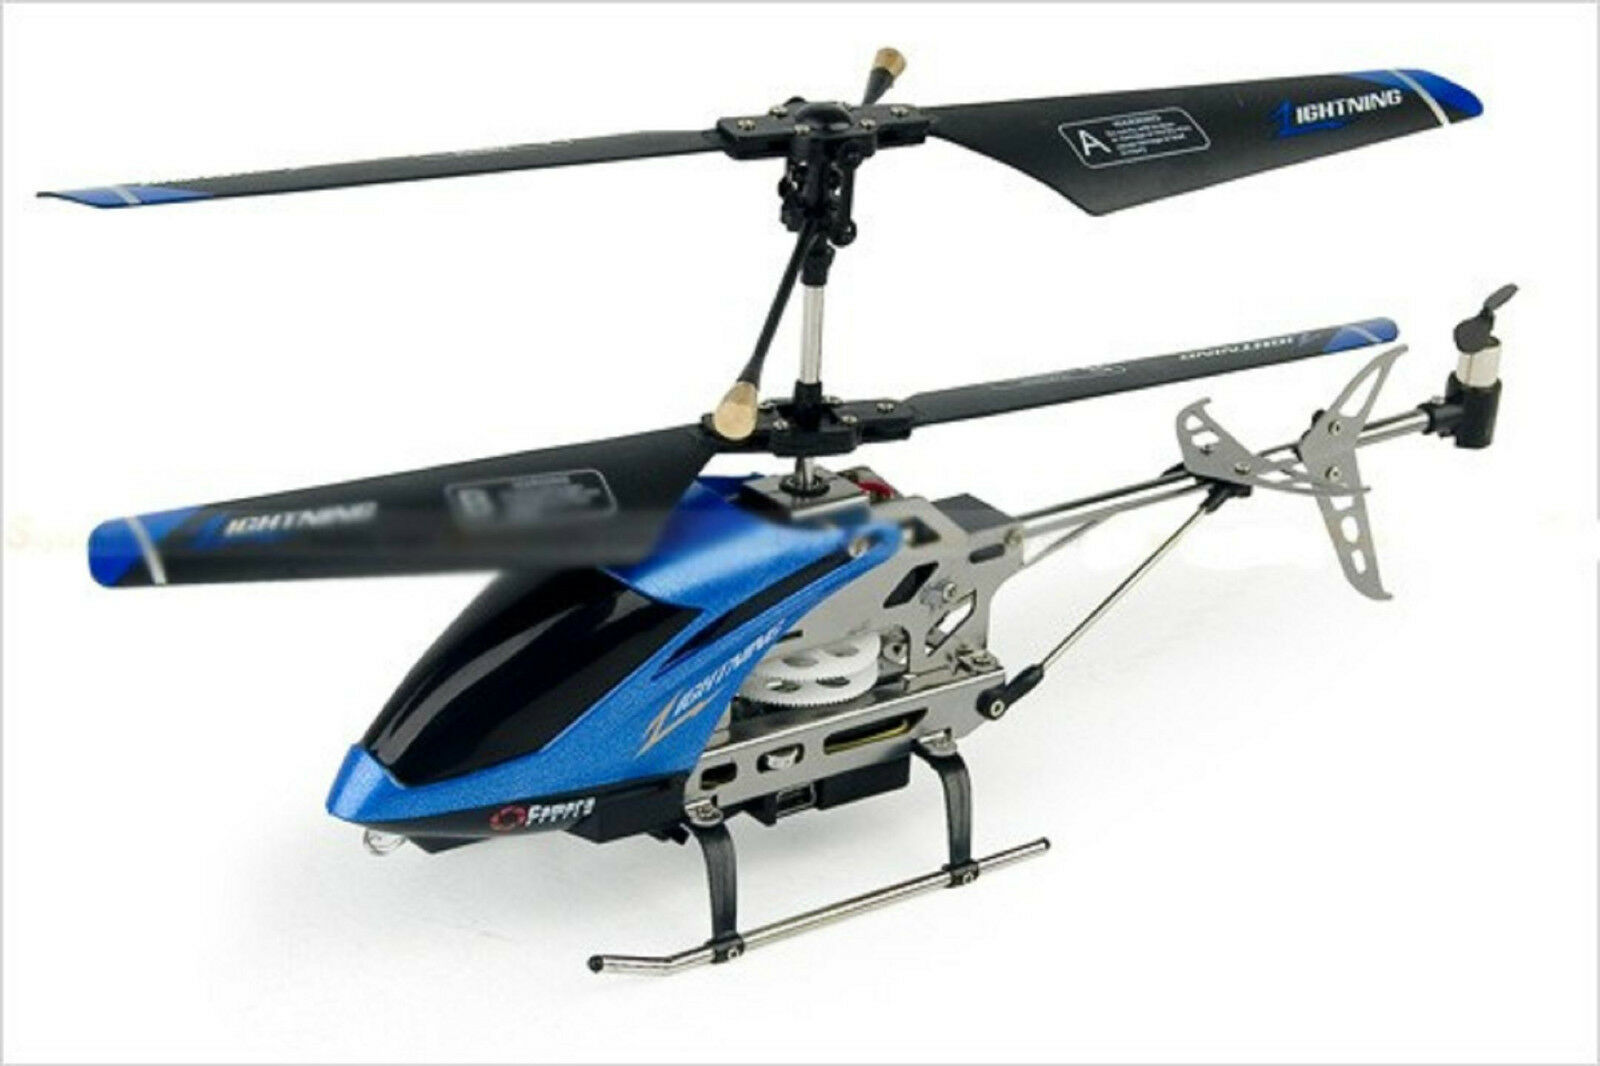 bluee Spy Helicopter C7 3.5 Channel Infrared Control Gyro Camera 130 MP Heli UK